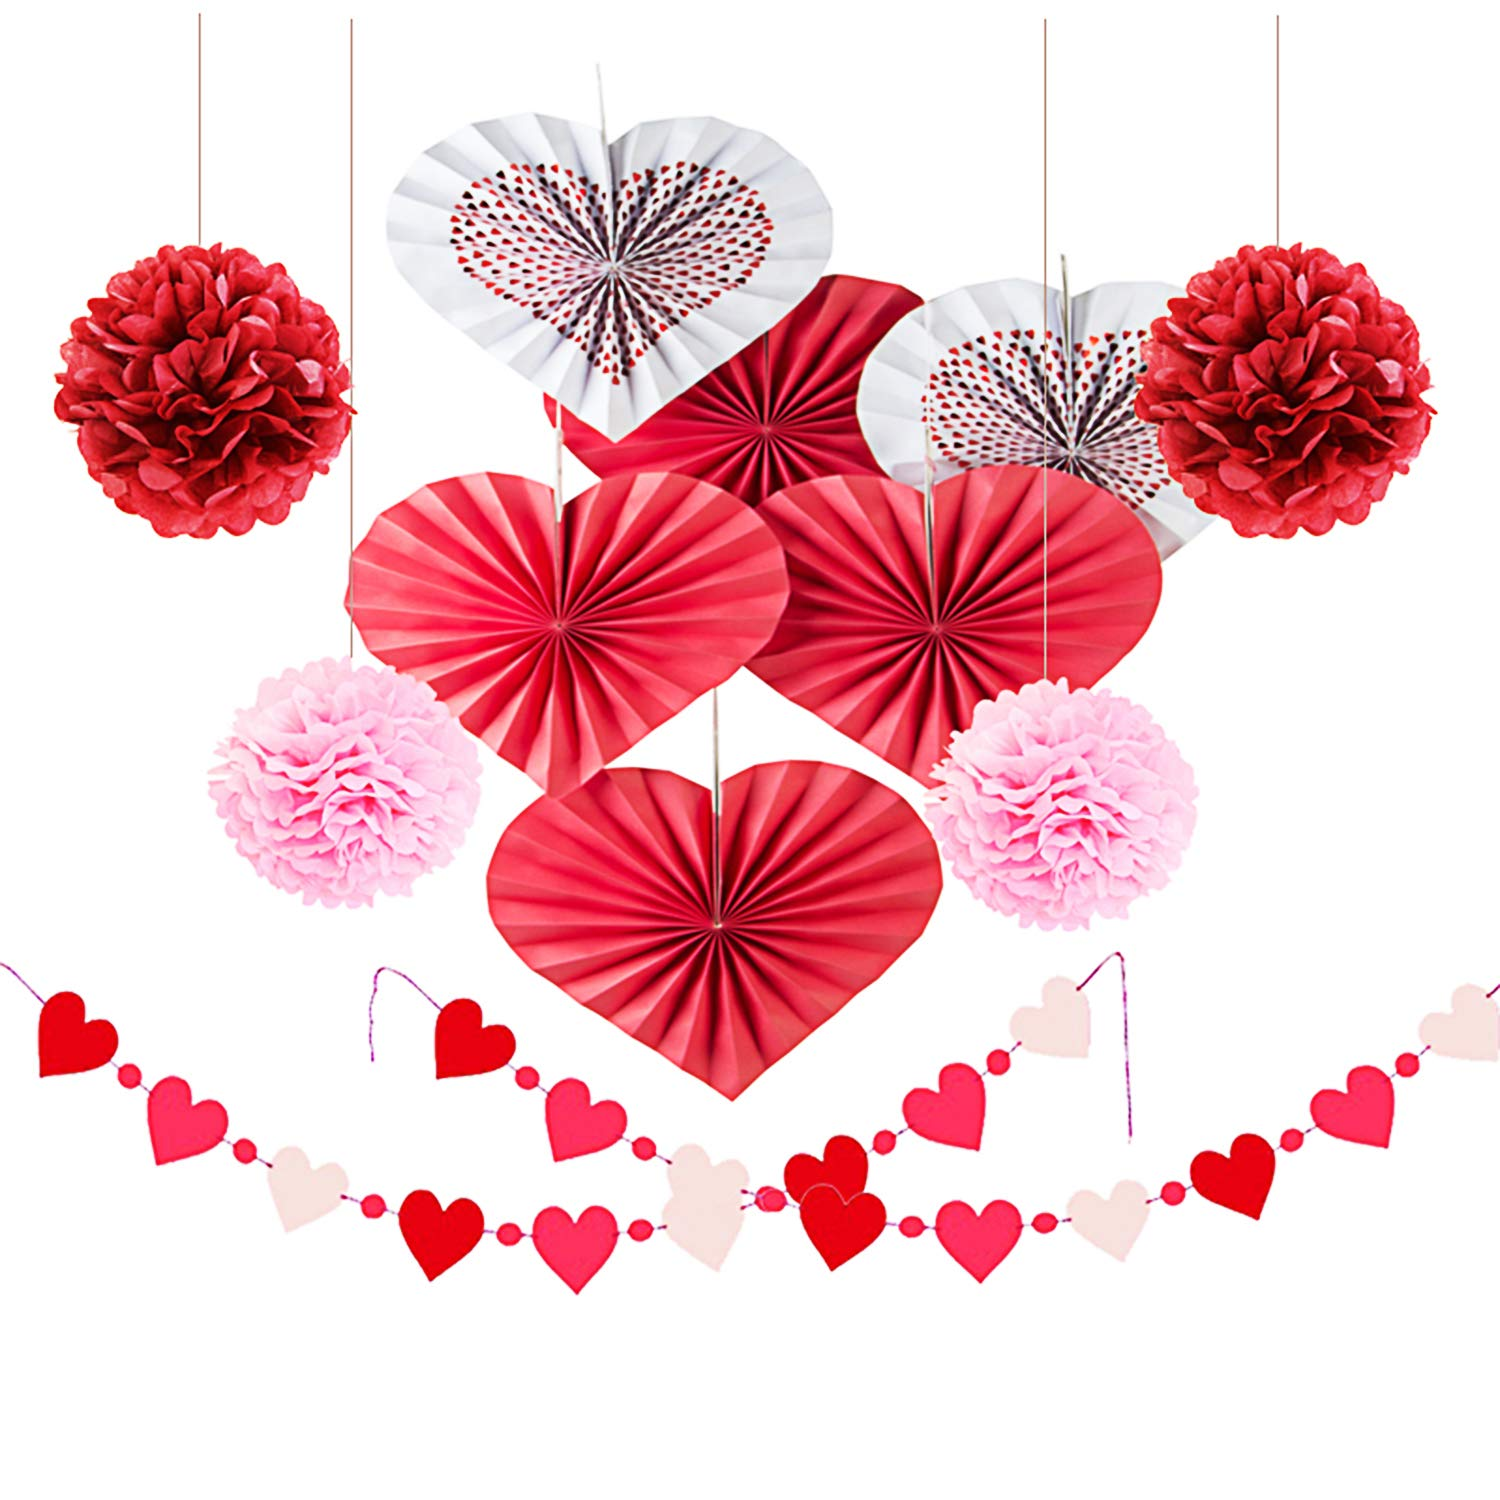 12 Pcs Heart Hanging Paper Fan Set (6 Pcs Heart Hanging Fan + 4 Pcs Paper Pom Poms + 2 String Heart Garland Bunting) Party Birthday Wedding Valentine's Day Decorations